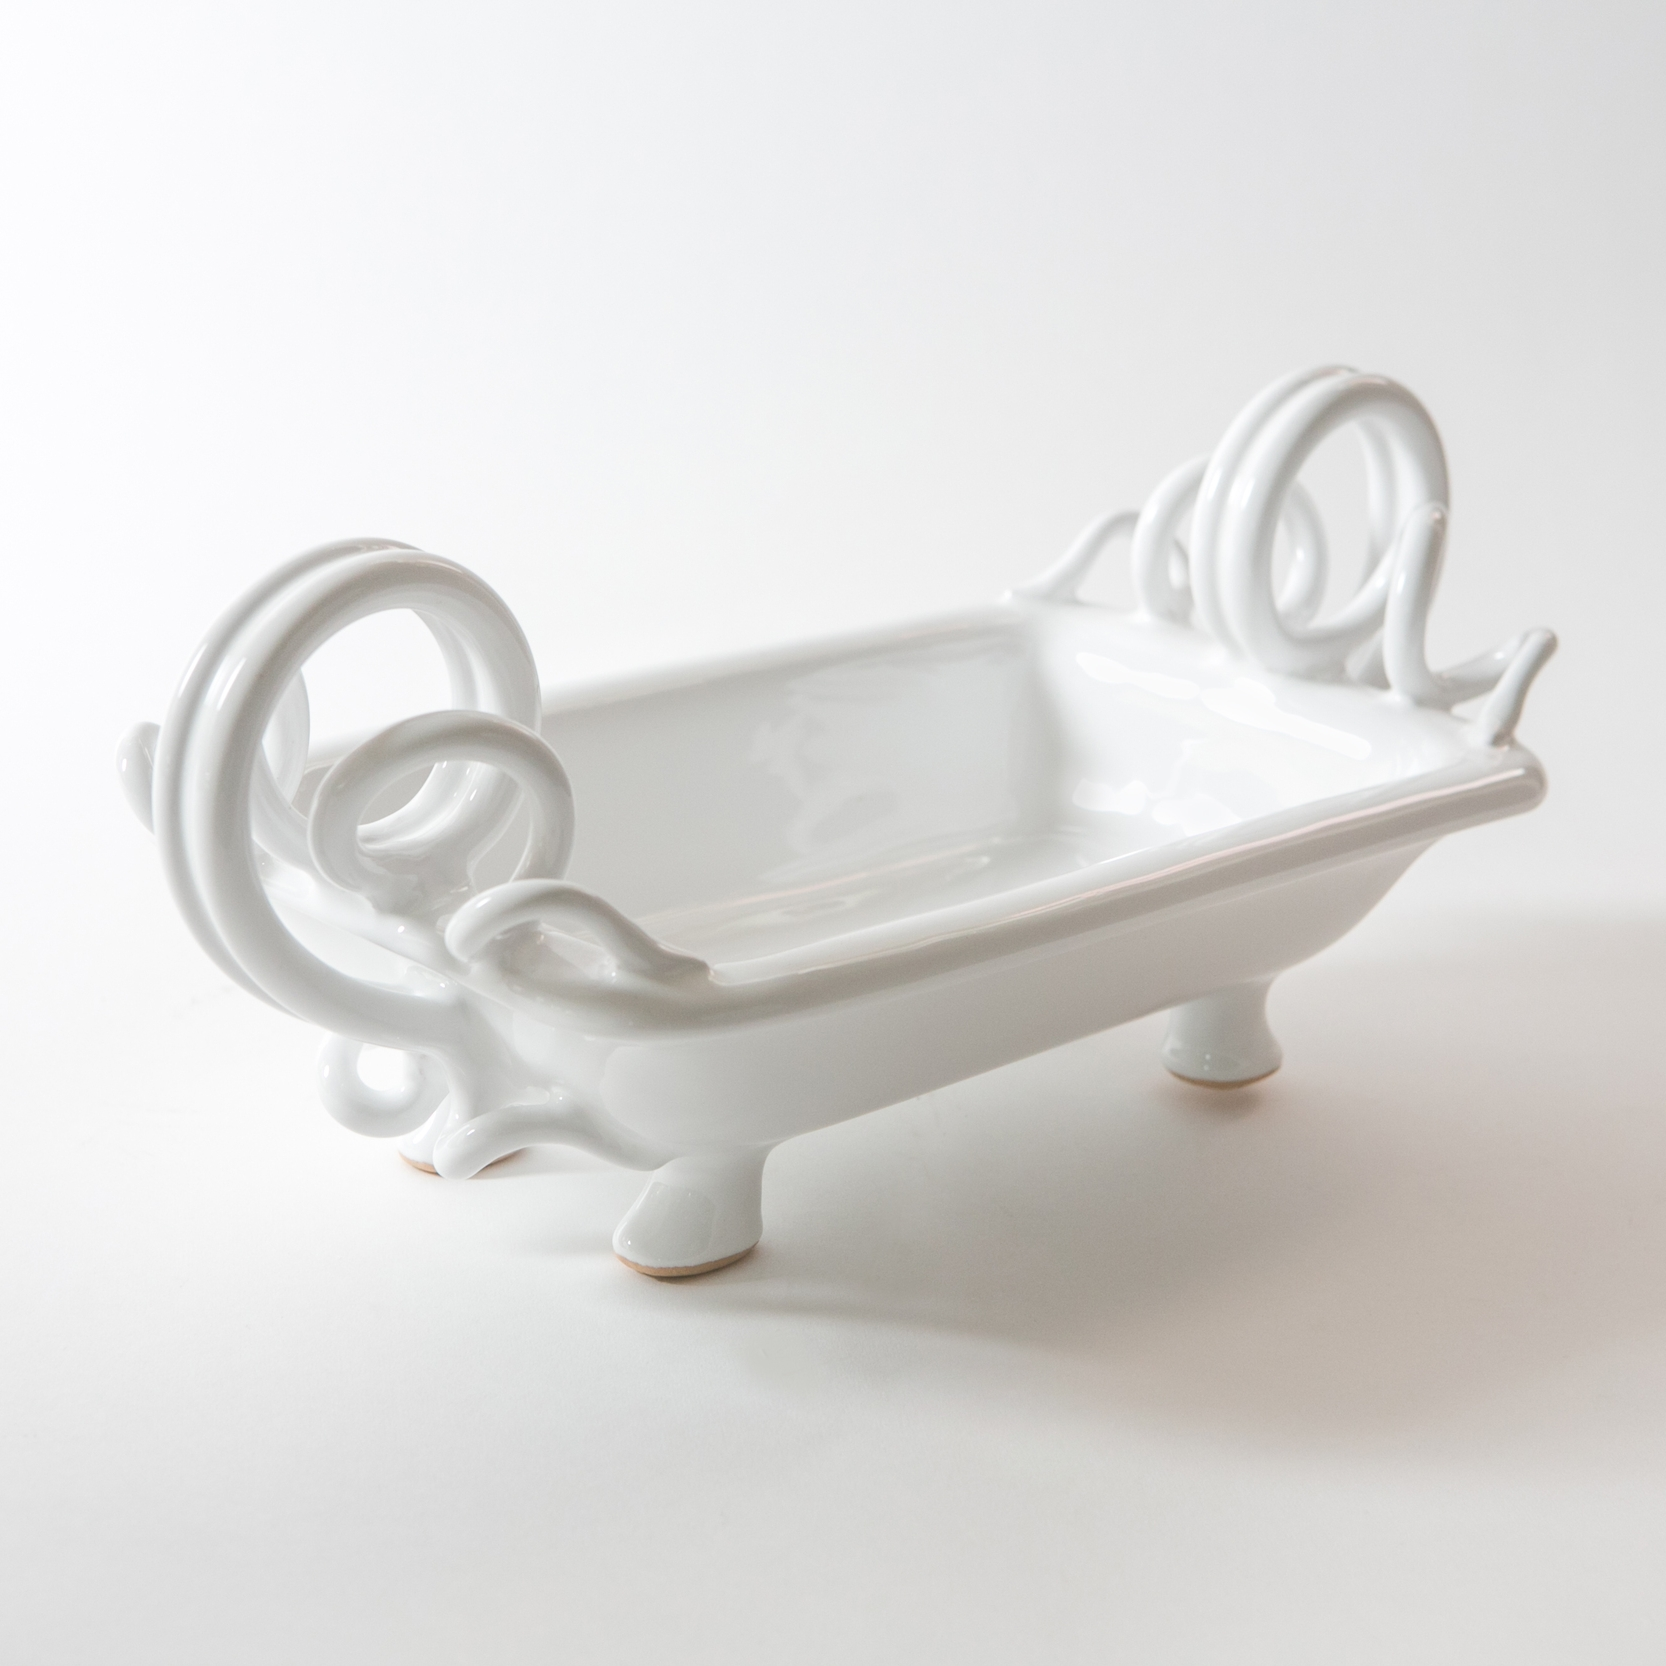 14. GdS - Enza Fasano Centerpiece with Ornamental Handles.jpg